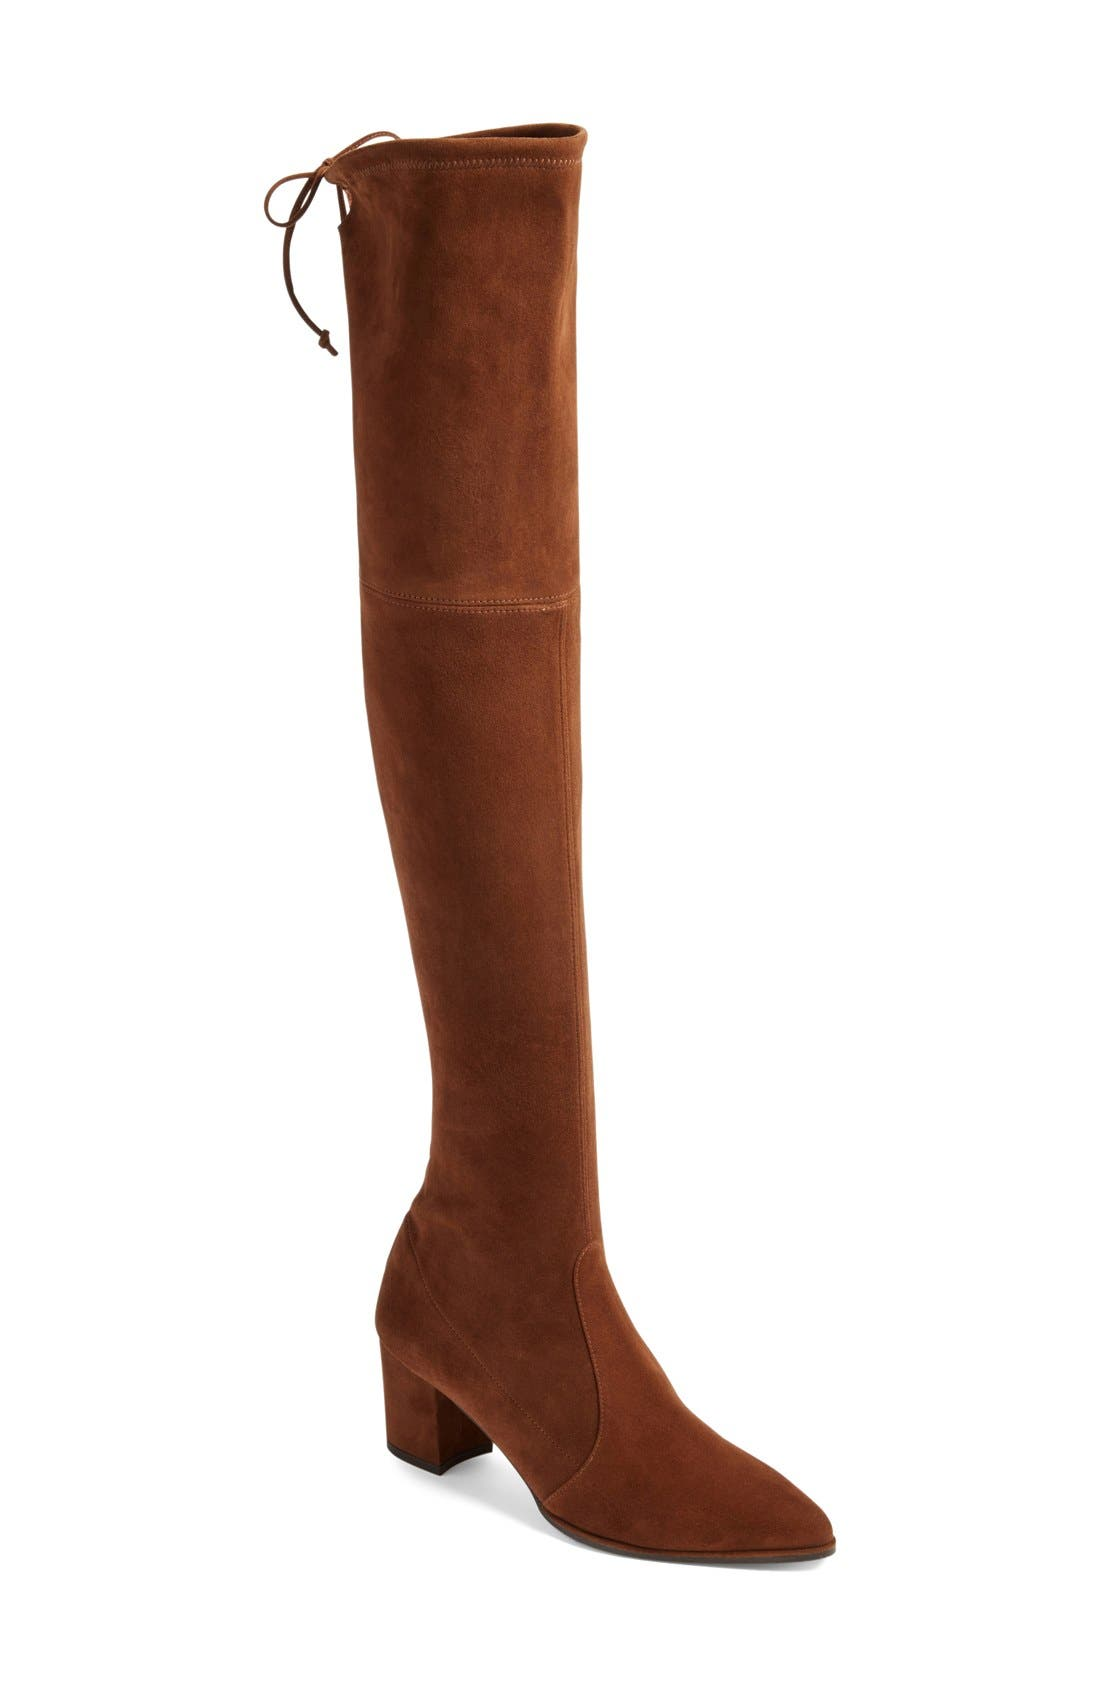 Thighland Over the Knee Boot,                             Main thumbnail 1, color,                             Walnut Suede